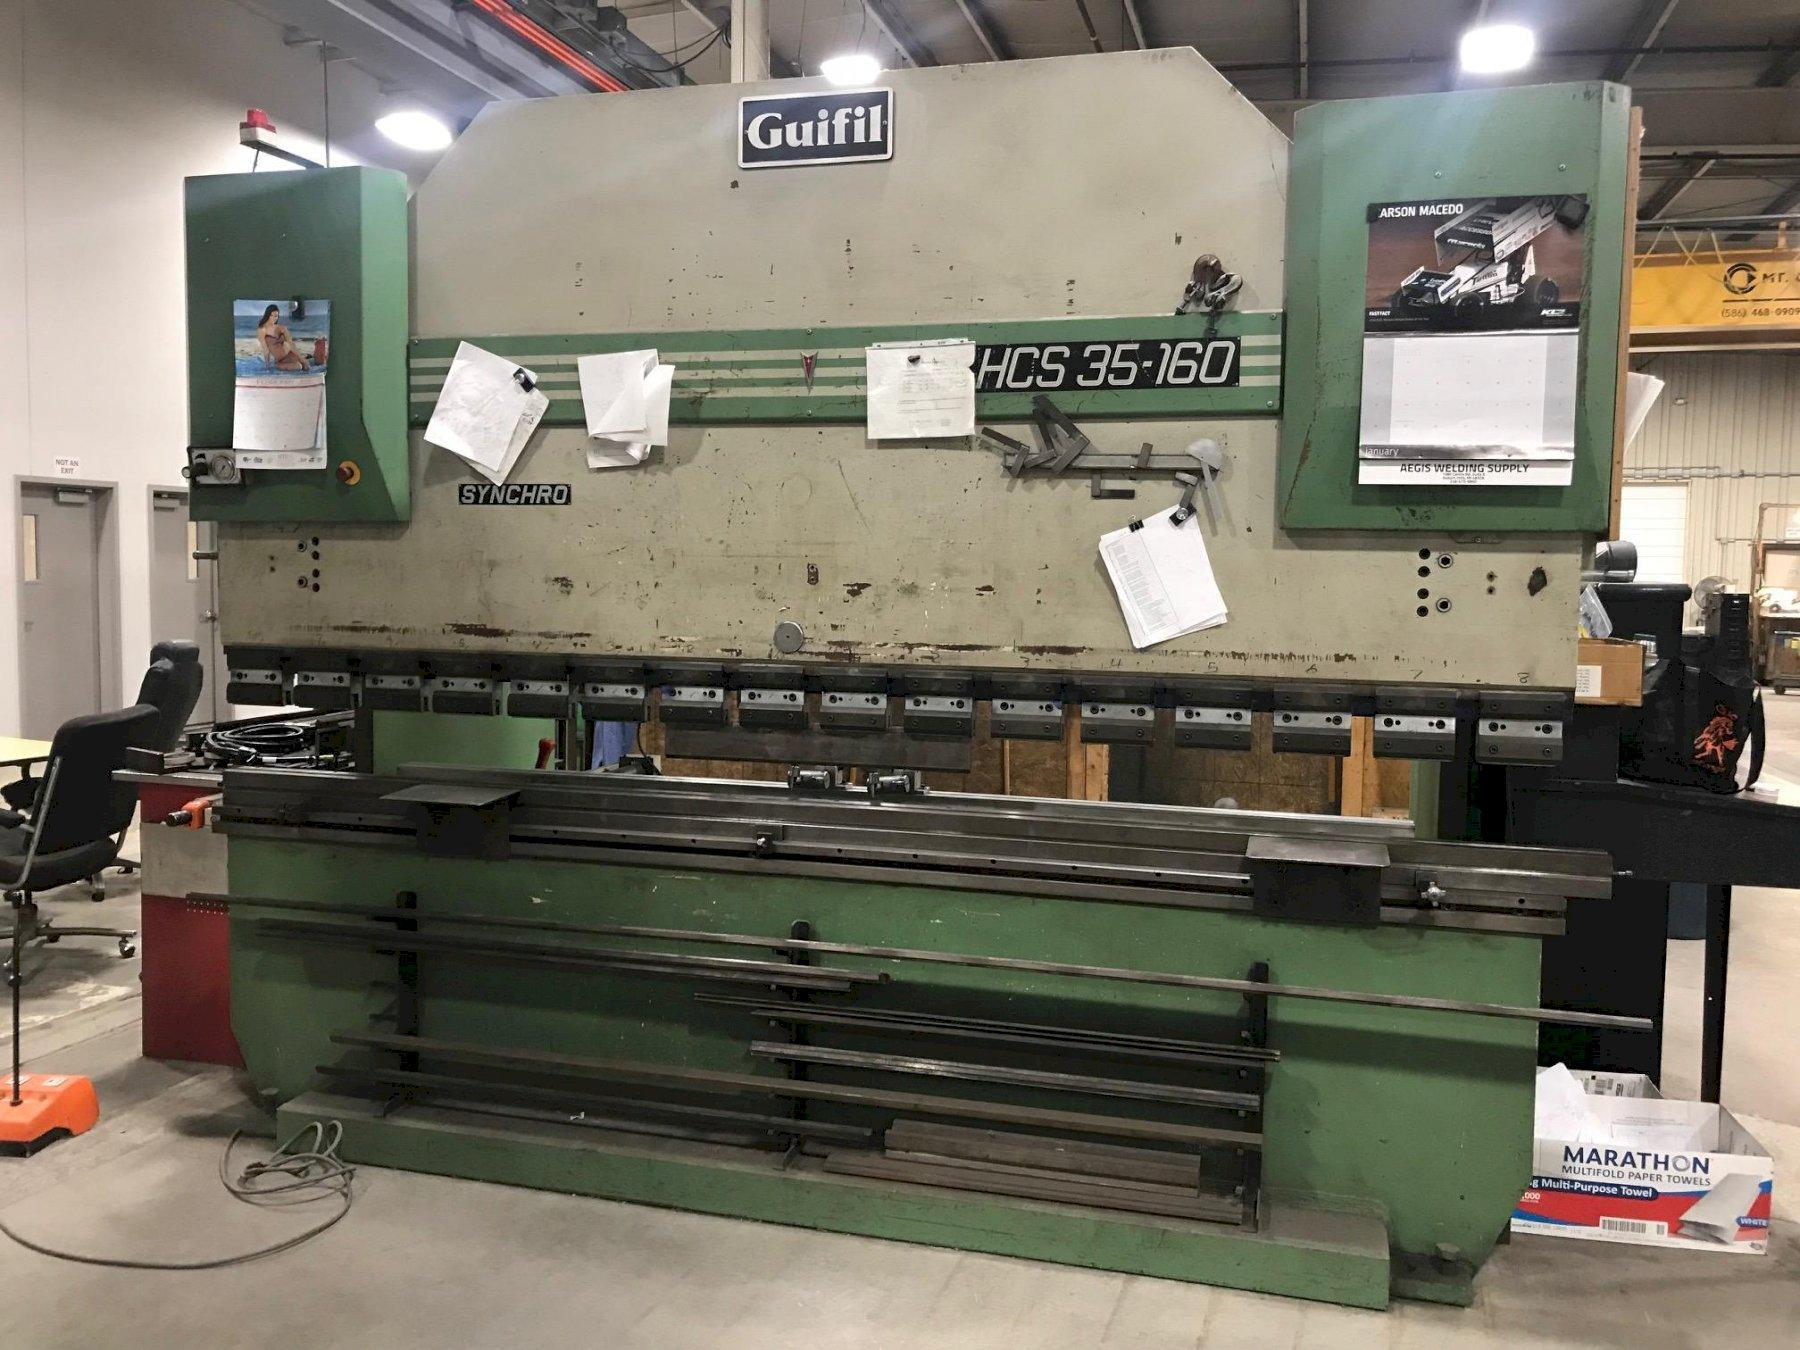 USED GUIFIL DOWNACTING HYDRAULIC PRESS BRAKE MODEL HCS 35-160, Year 1994, Stock # 10714